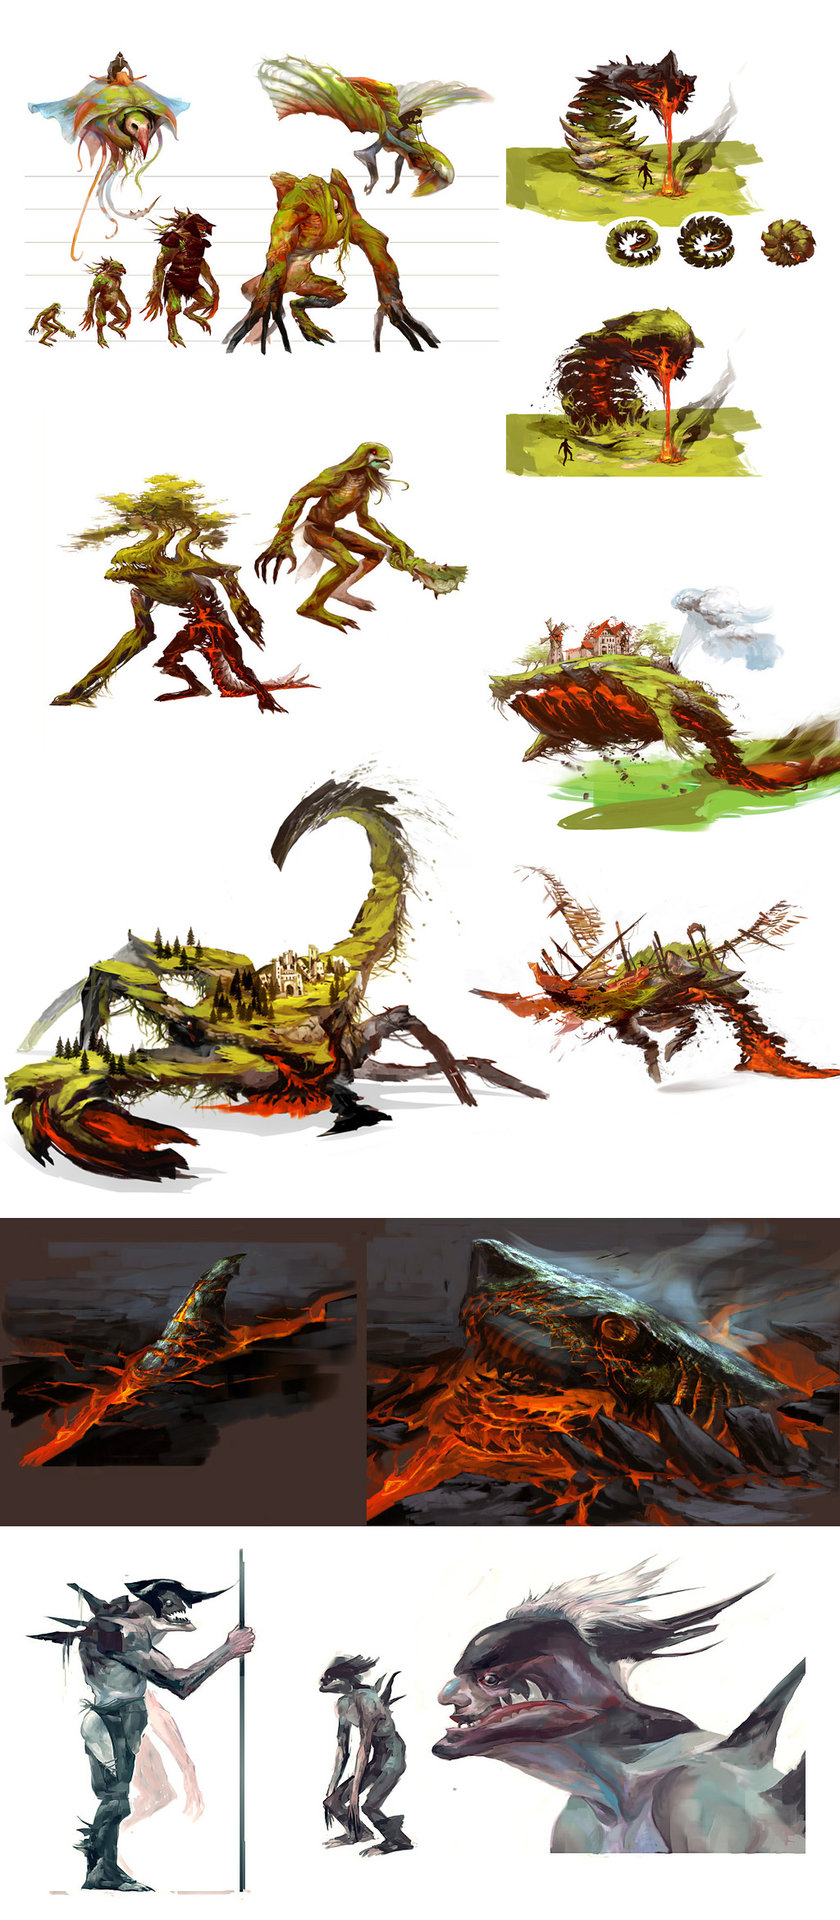 Veronique meignaud 03 creatures 04b 1024 b